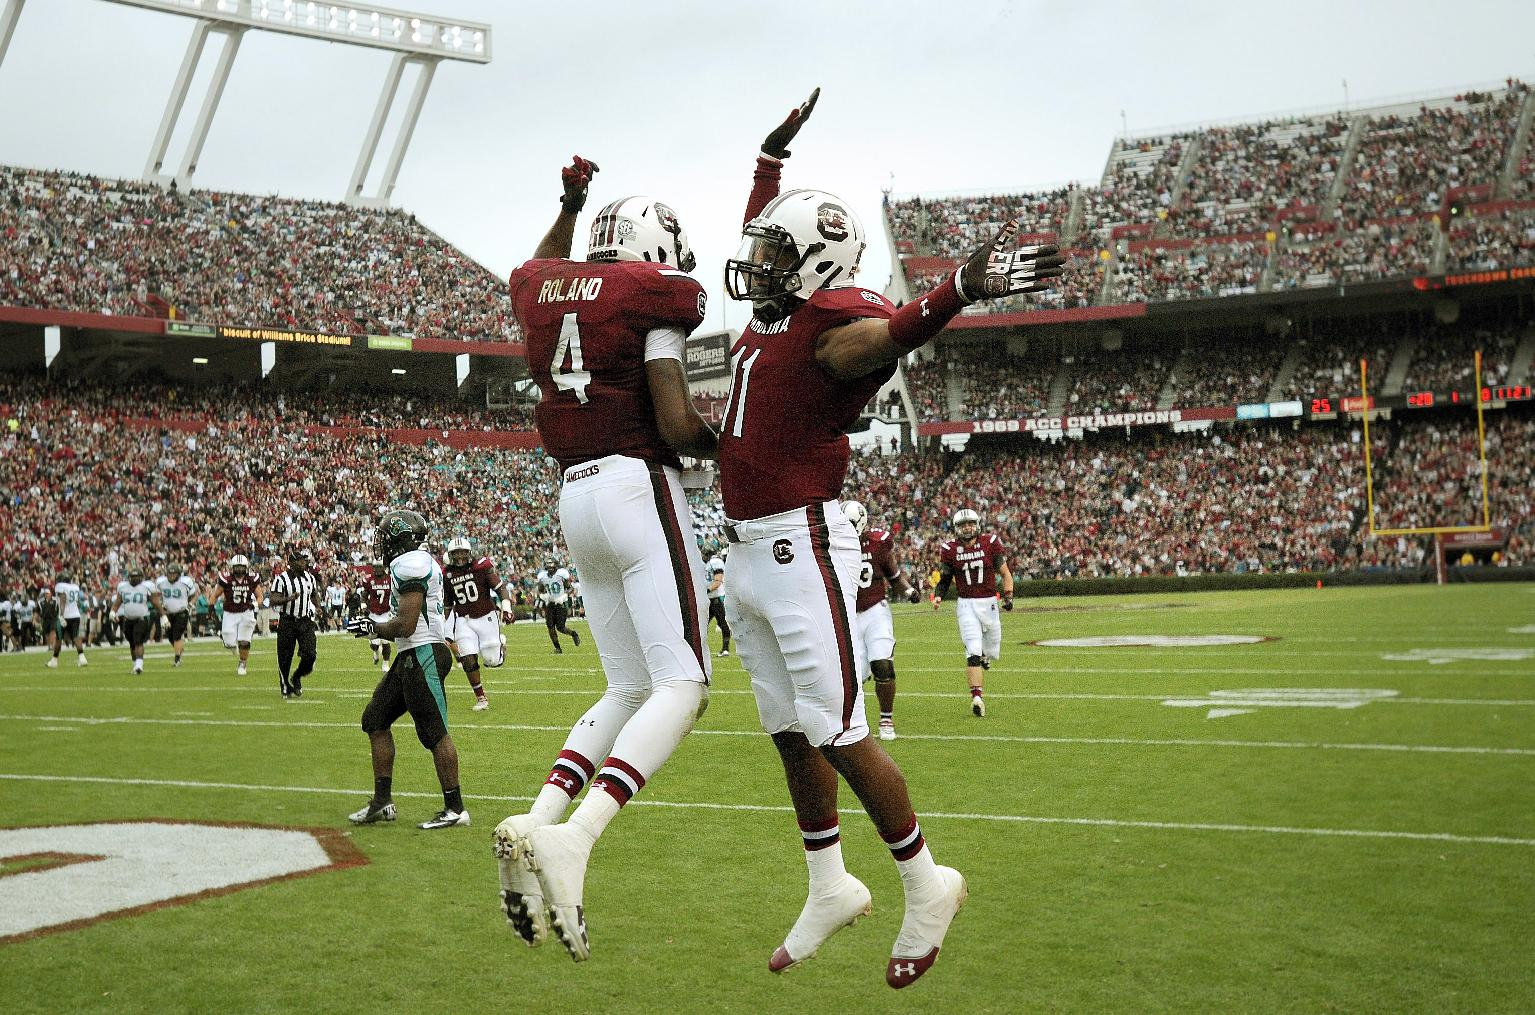 South Carolina wide receivers Pharoh Cooper (11) and Shaq Roland (4) celebrate Cooper's touchdown during the first half of an NCAA college football game against Coastal Carolina, Saturday, Nov. 23, 2013 in Columbia, S.C